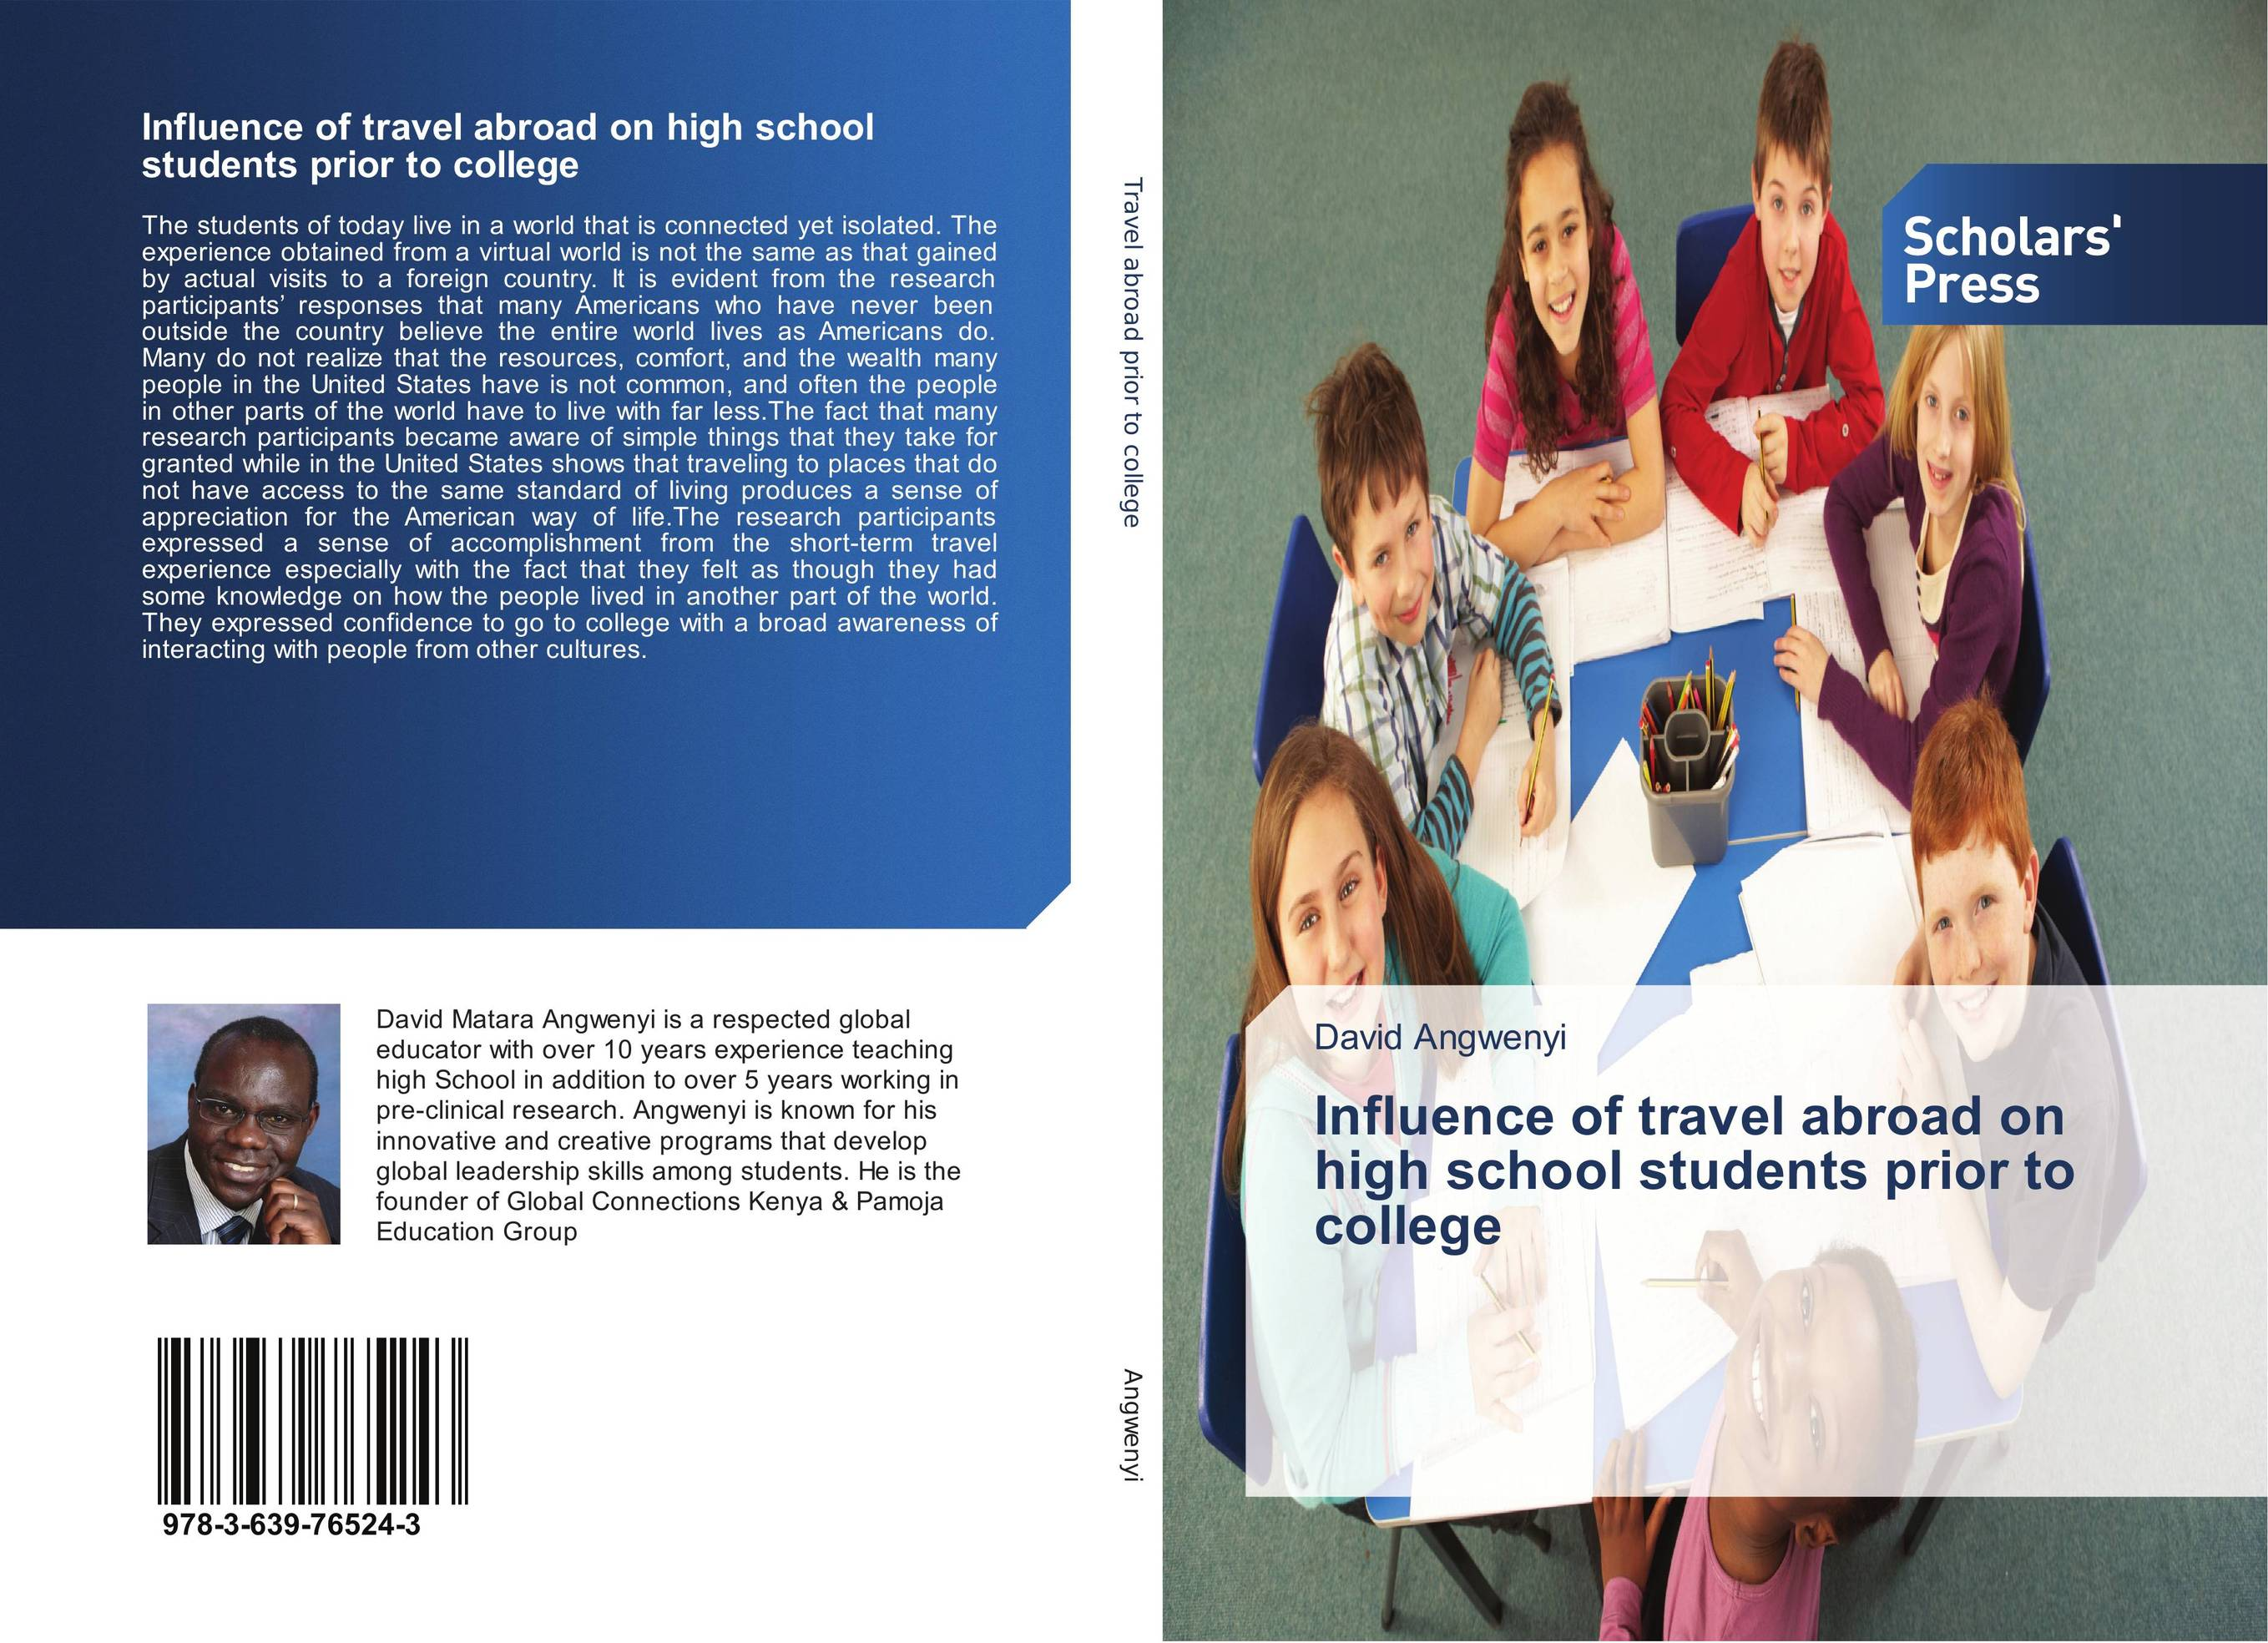 Influence of travel abroad on high school students prior to college